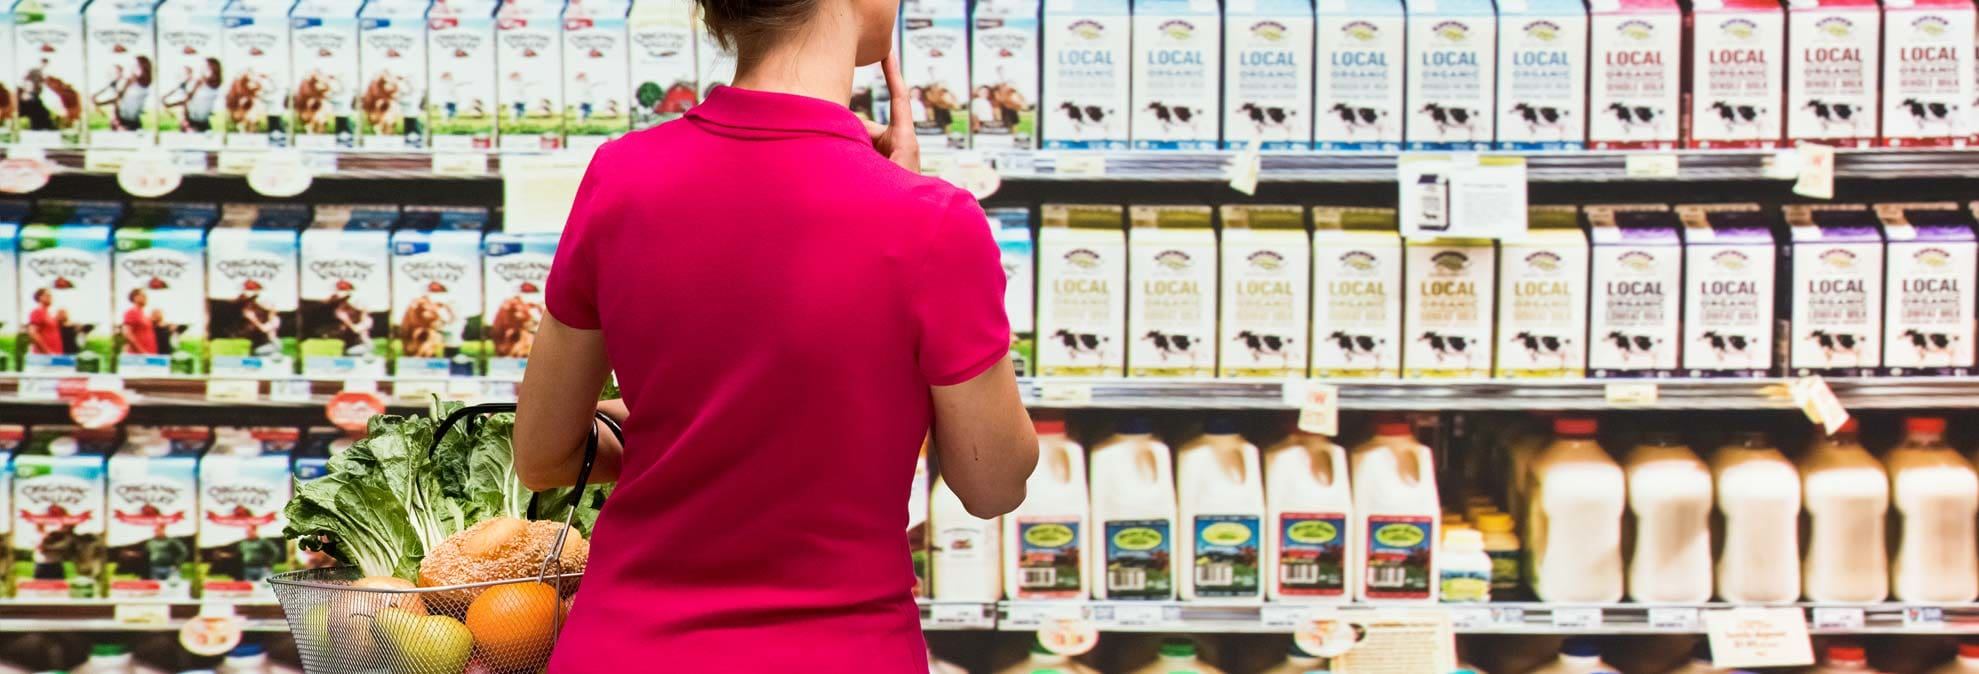 Best Grocery Store Prices in America  Consumer Reports